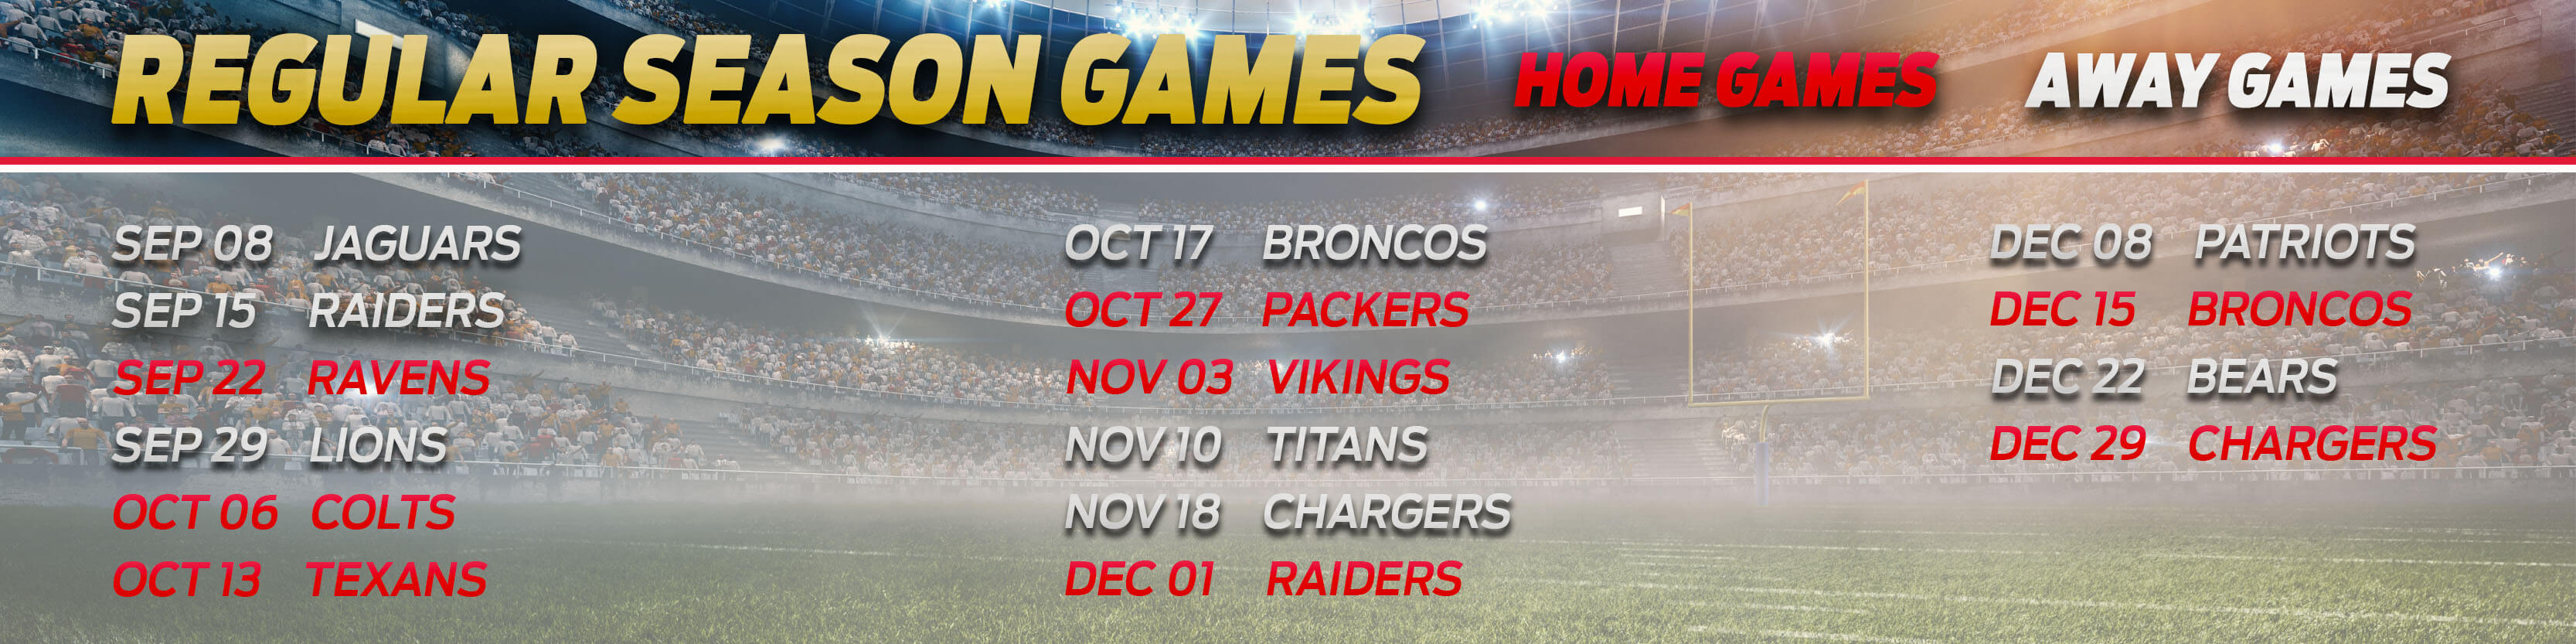 Chiefs Regular Season Games Schedule 2019